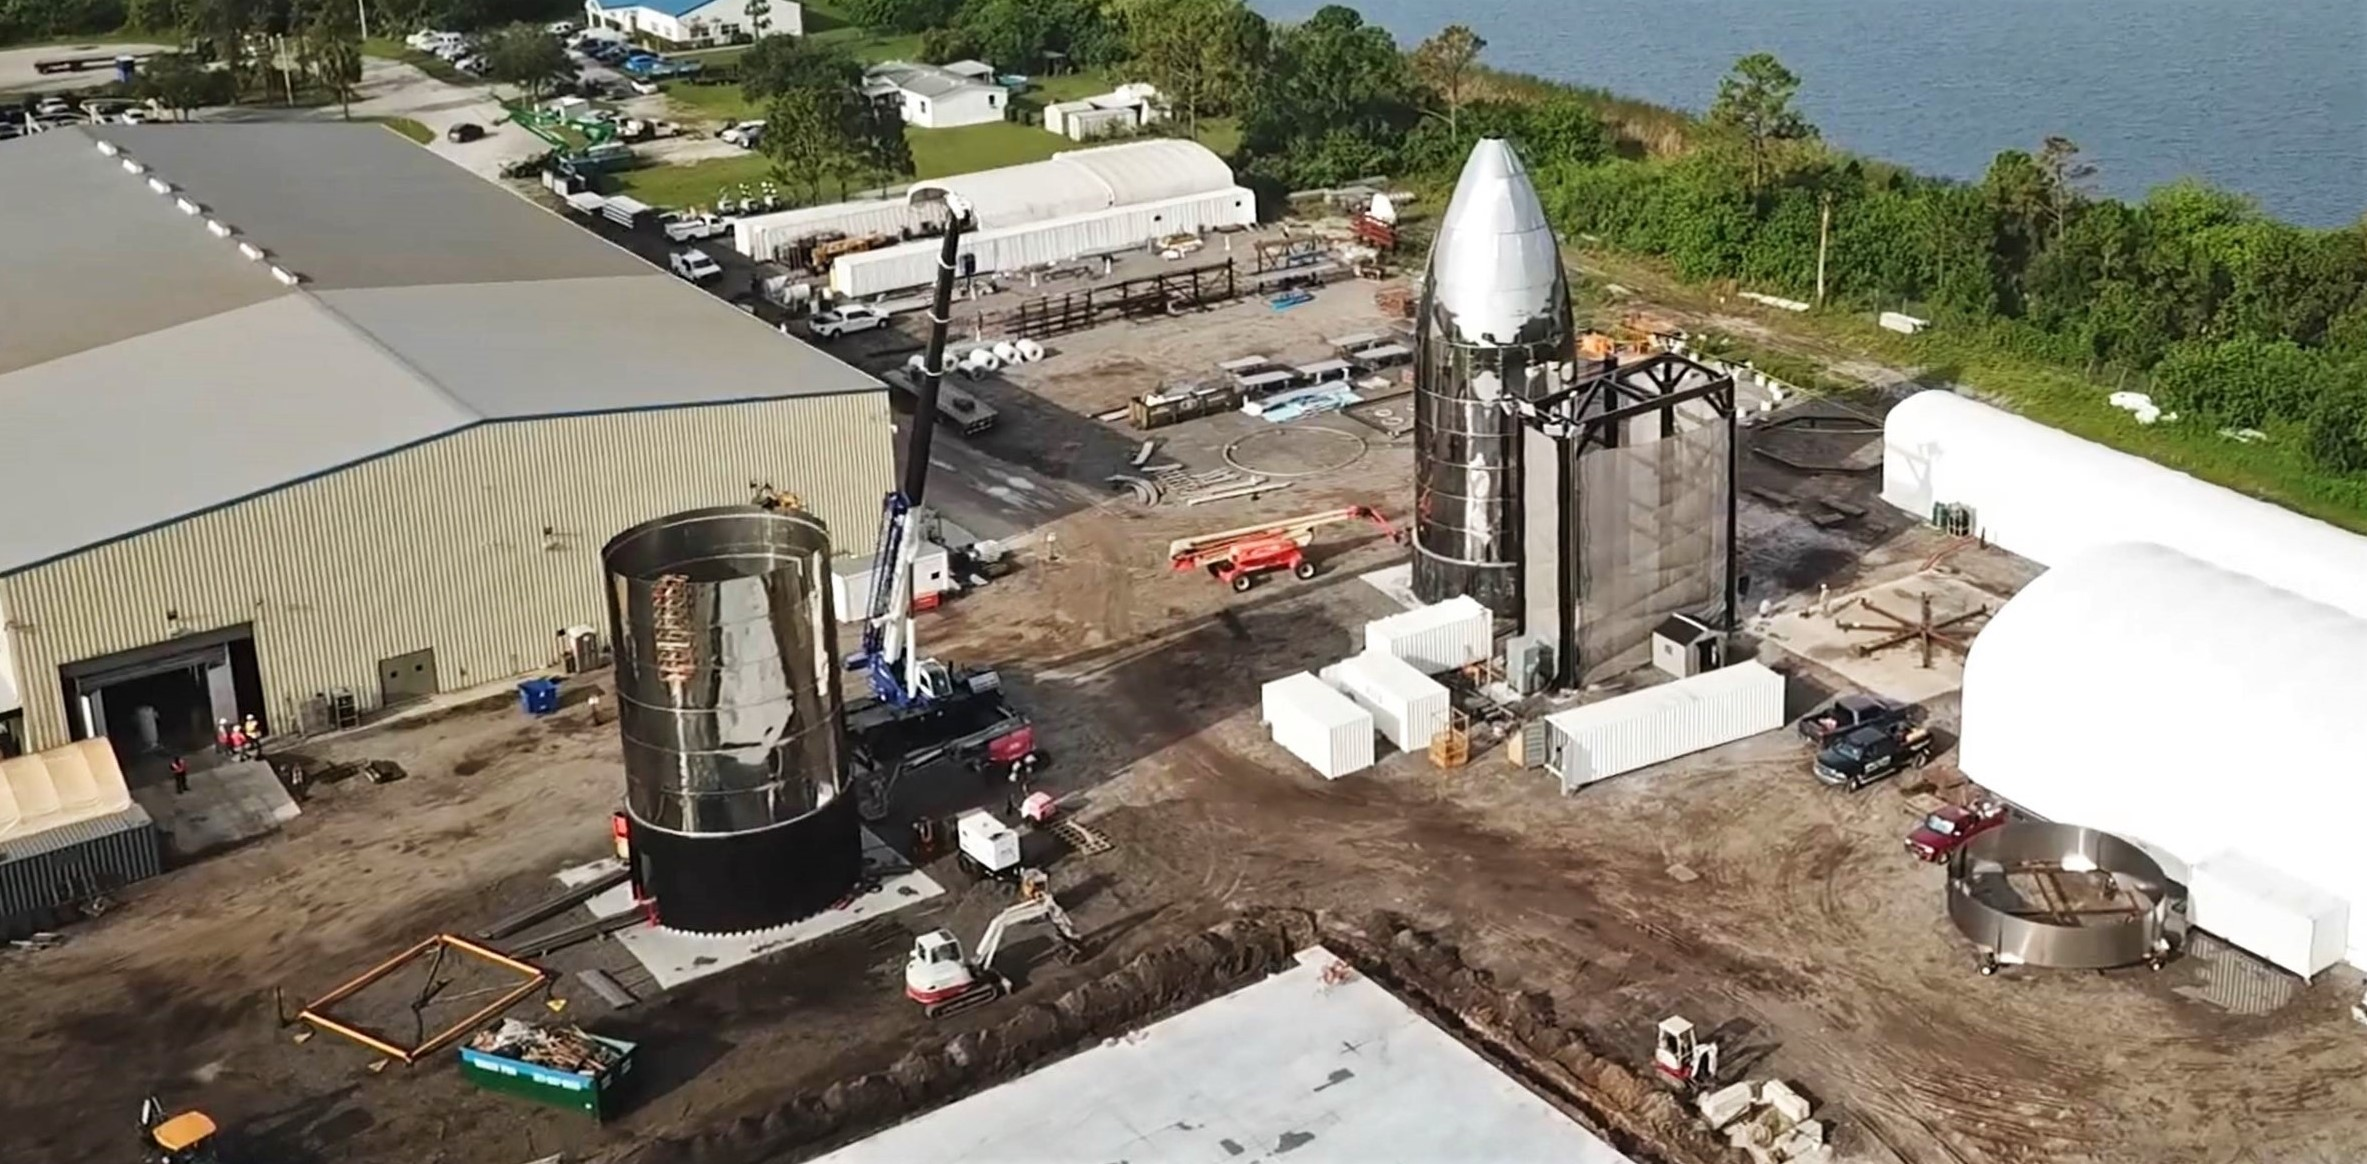 https://www.teslarati.com/wp-content/uploads/2019/07/SpaceX-Florida-Starship-facility-overview-070819-Michael-Tapes-9-crop.jpg